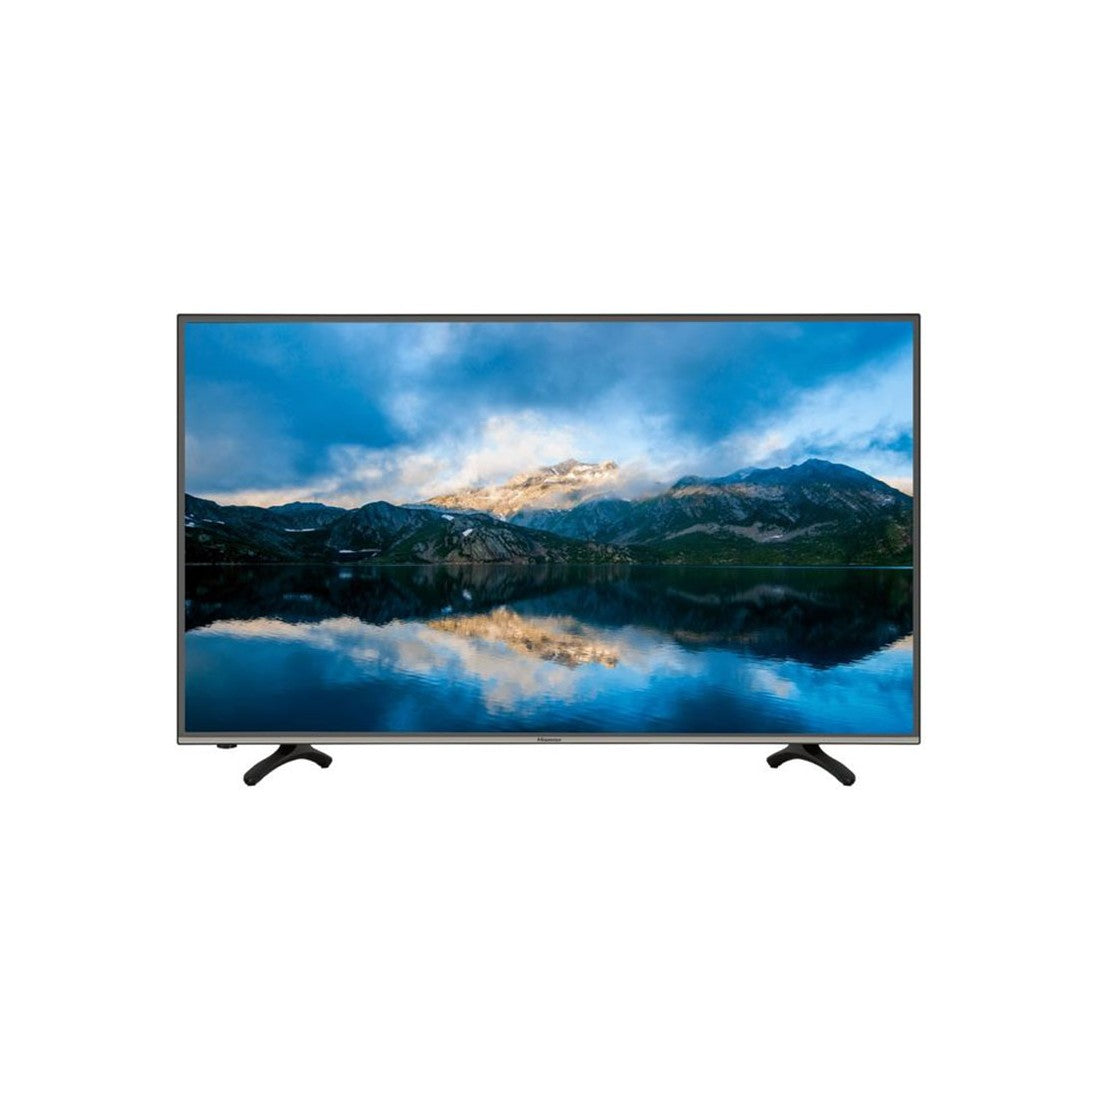 Hisense 43 Inch LED TV - Hx43n2176 - Dool-X IT Republic